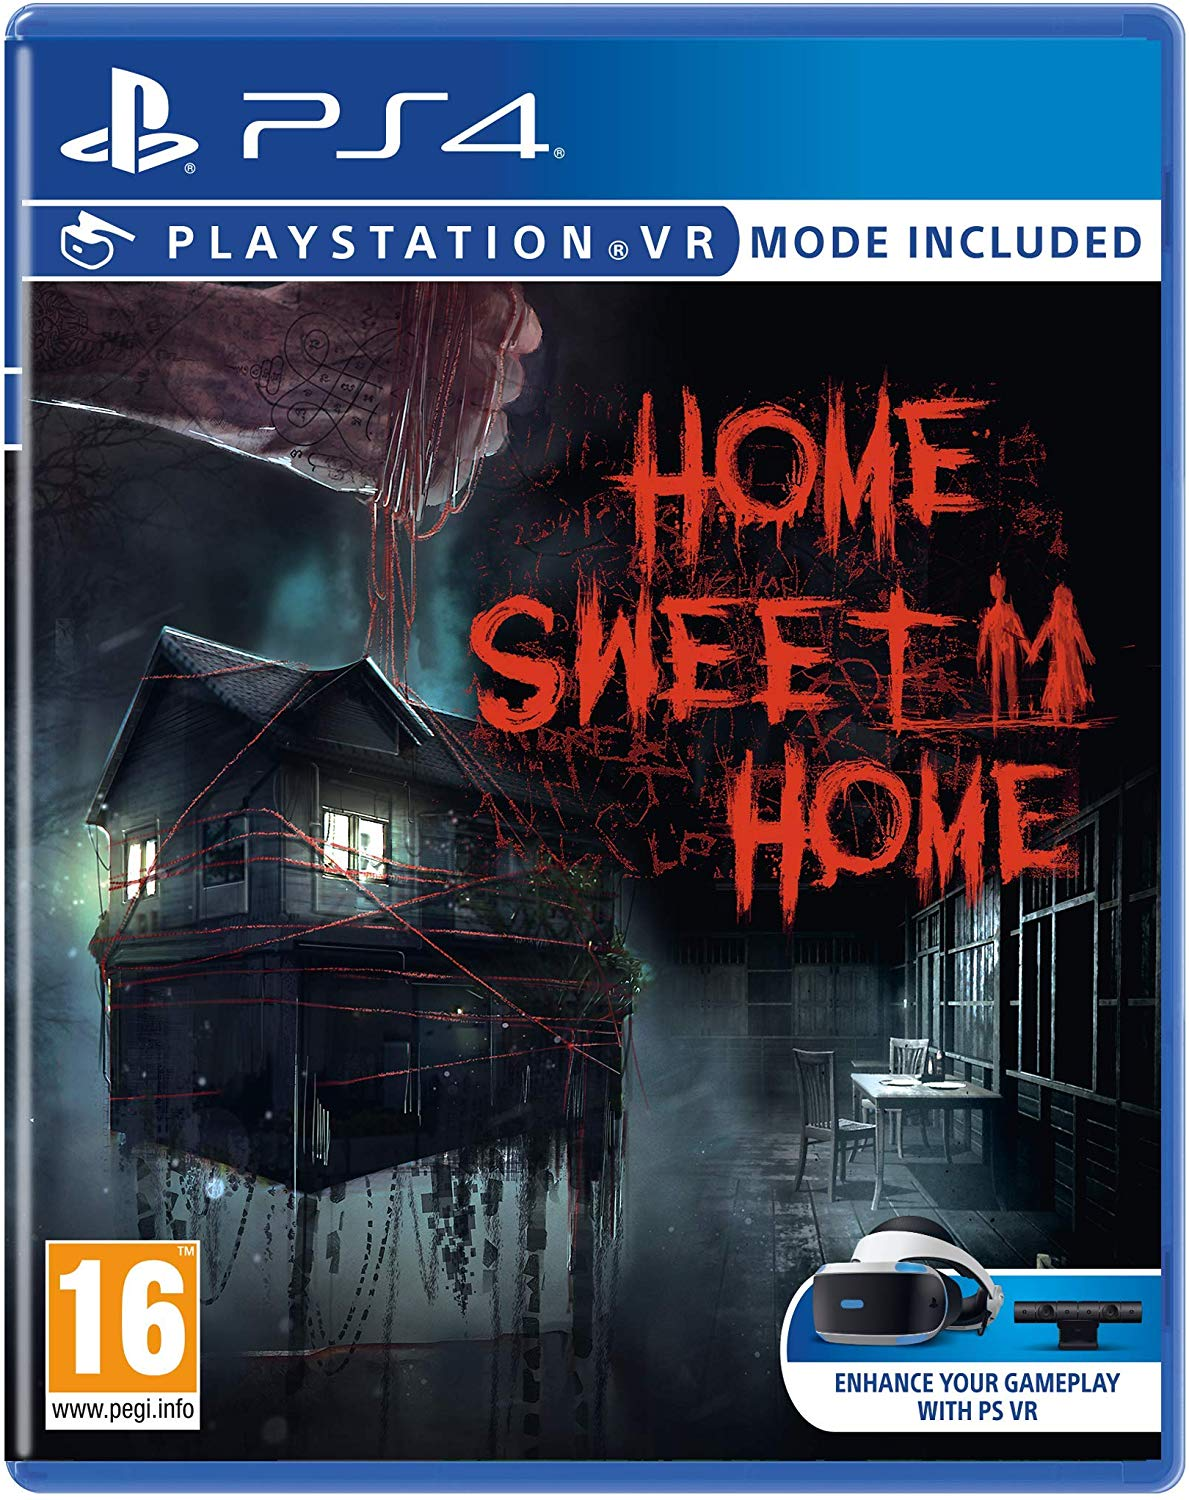 Home Sweet Home - PlayStation 4 VR (UK)